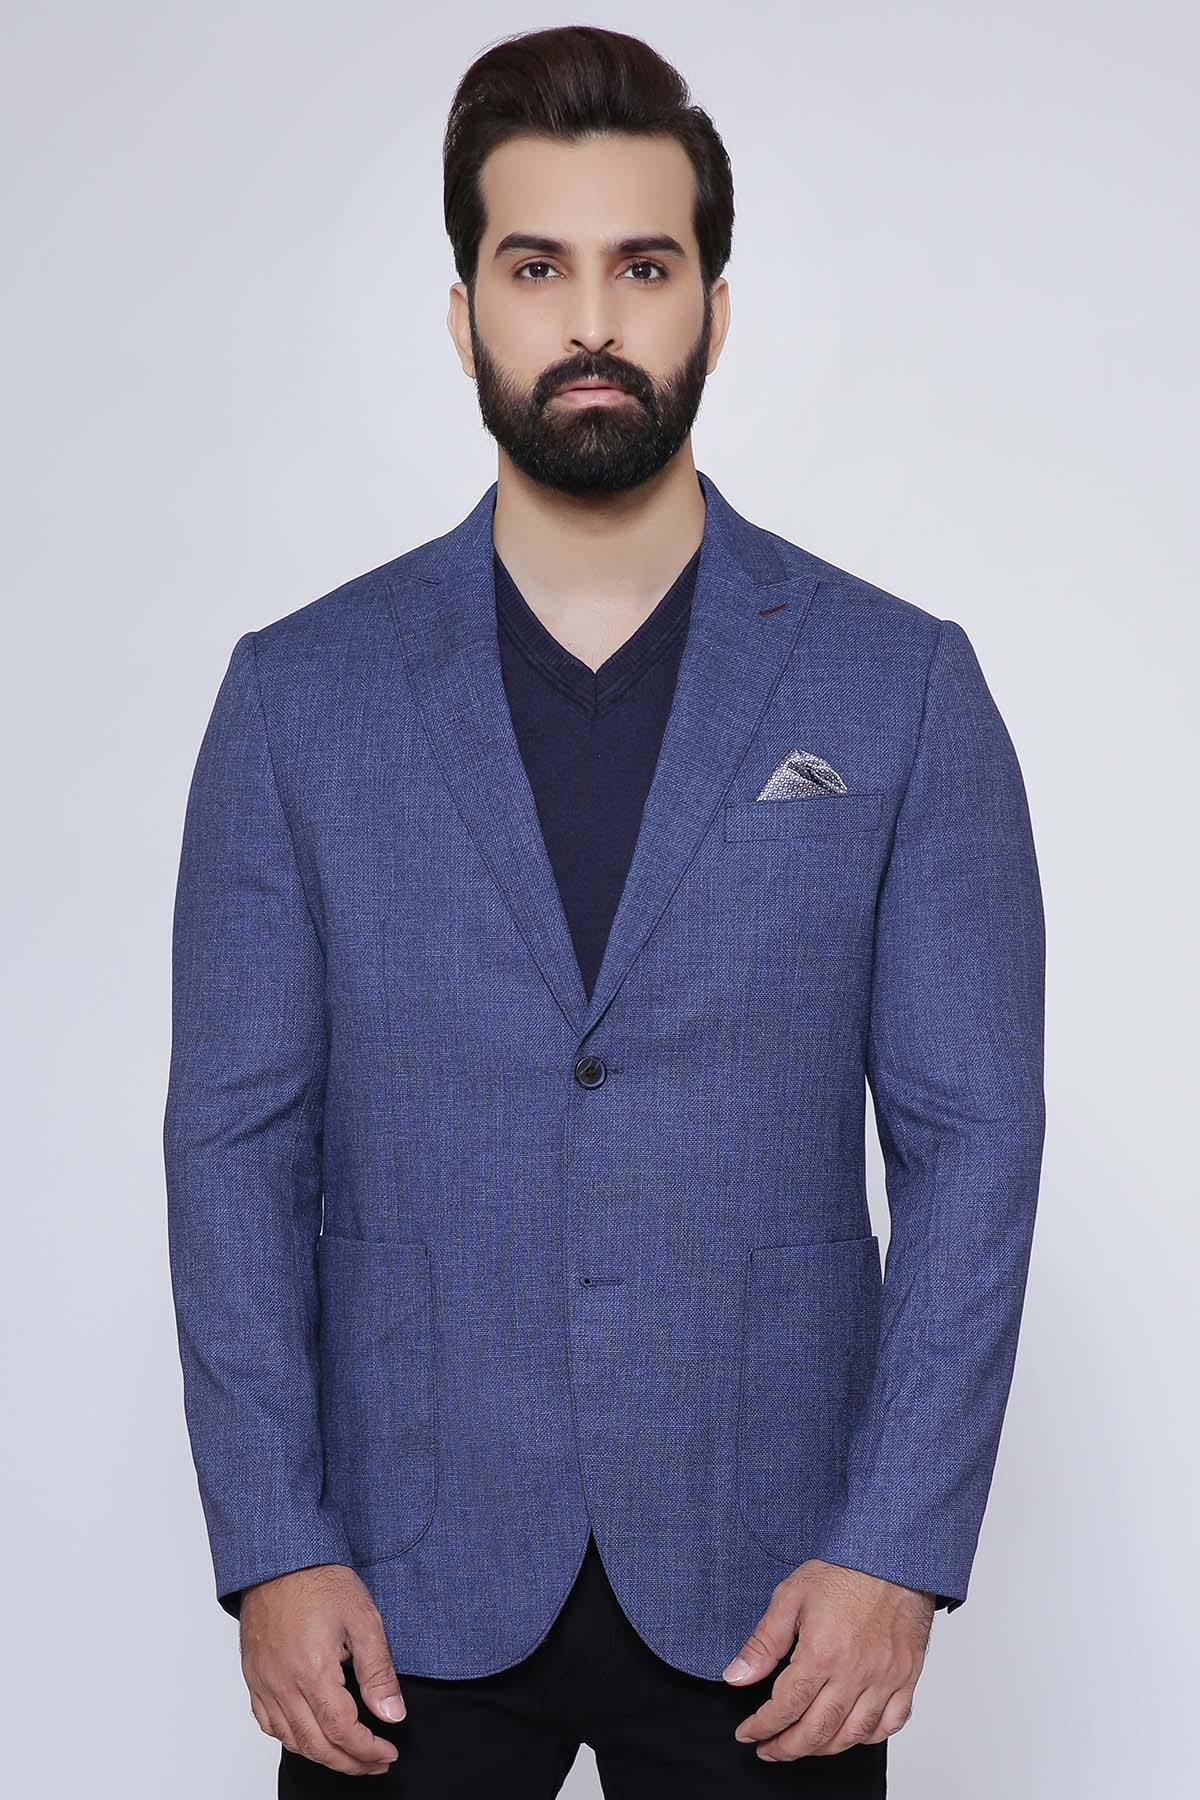 CASUAL COAT 2 BUTTON SLIM FIT BLUE - Charcoal - Suiting -